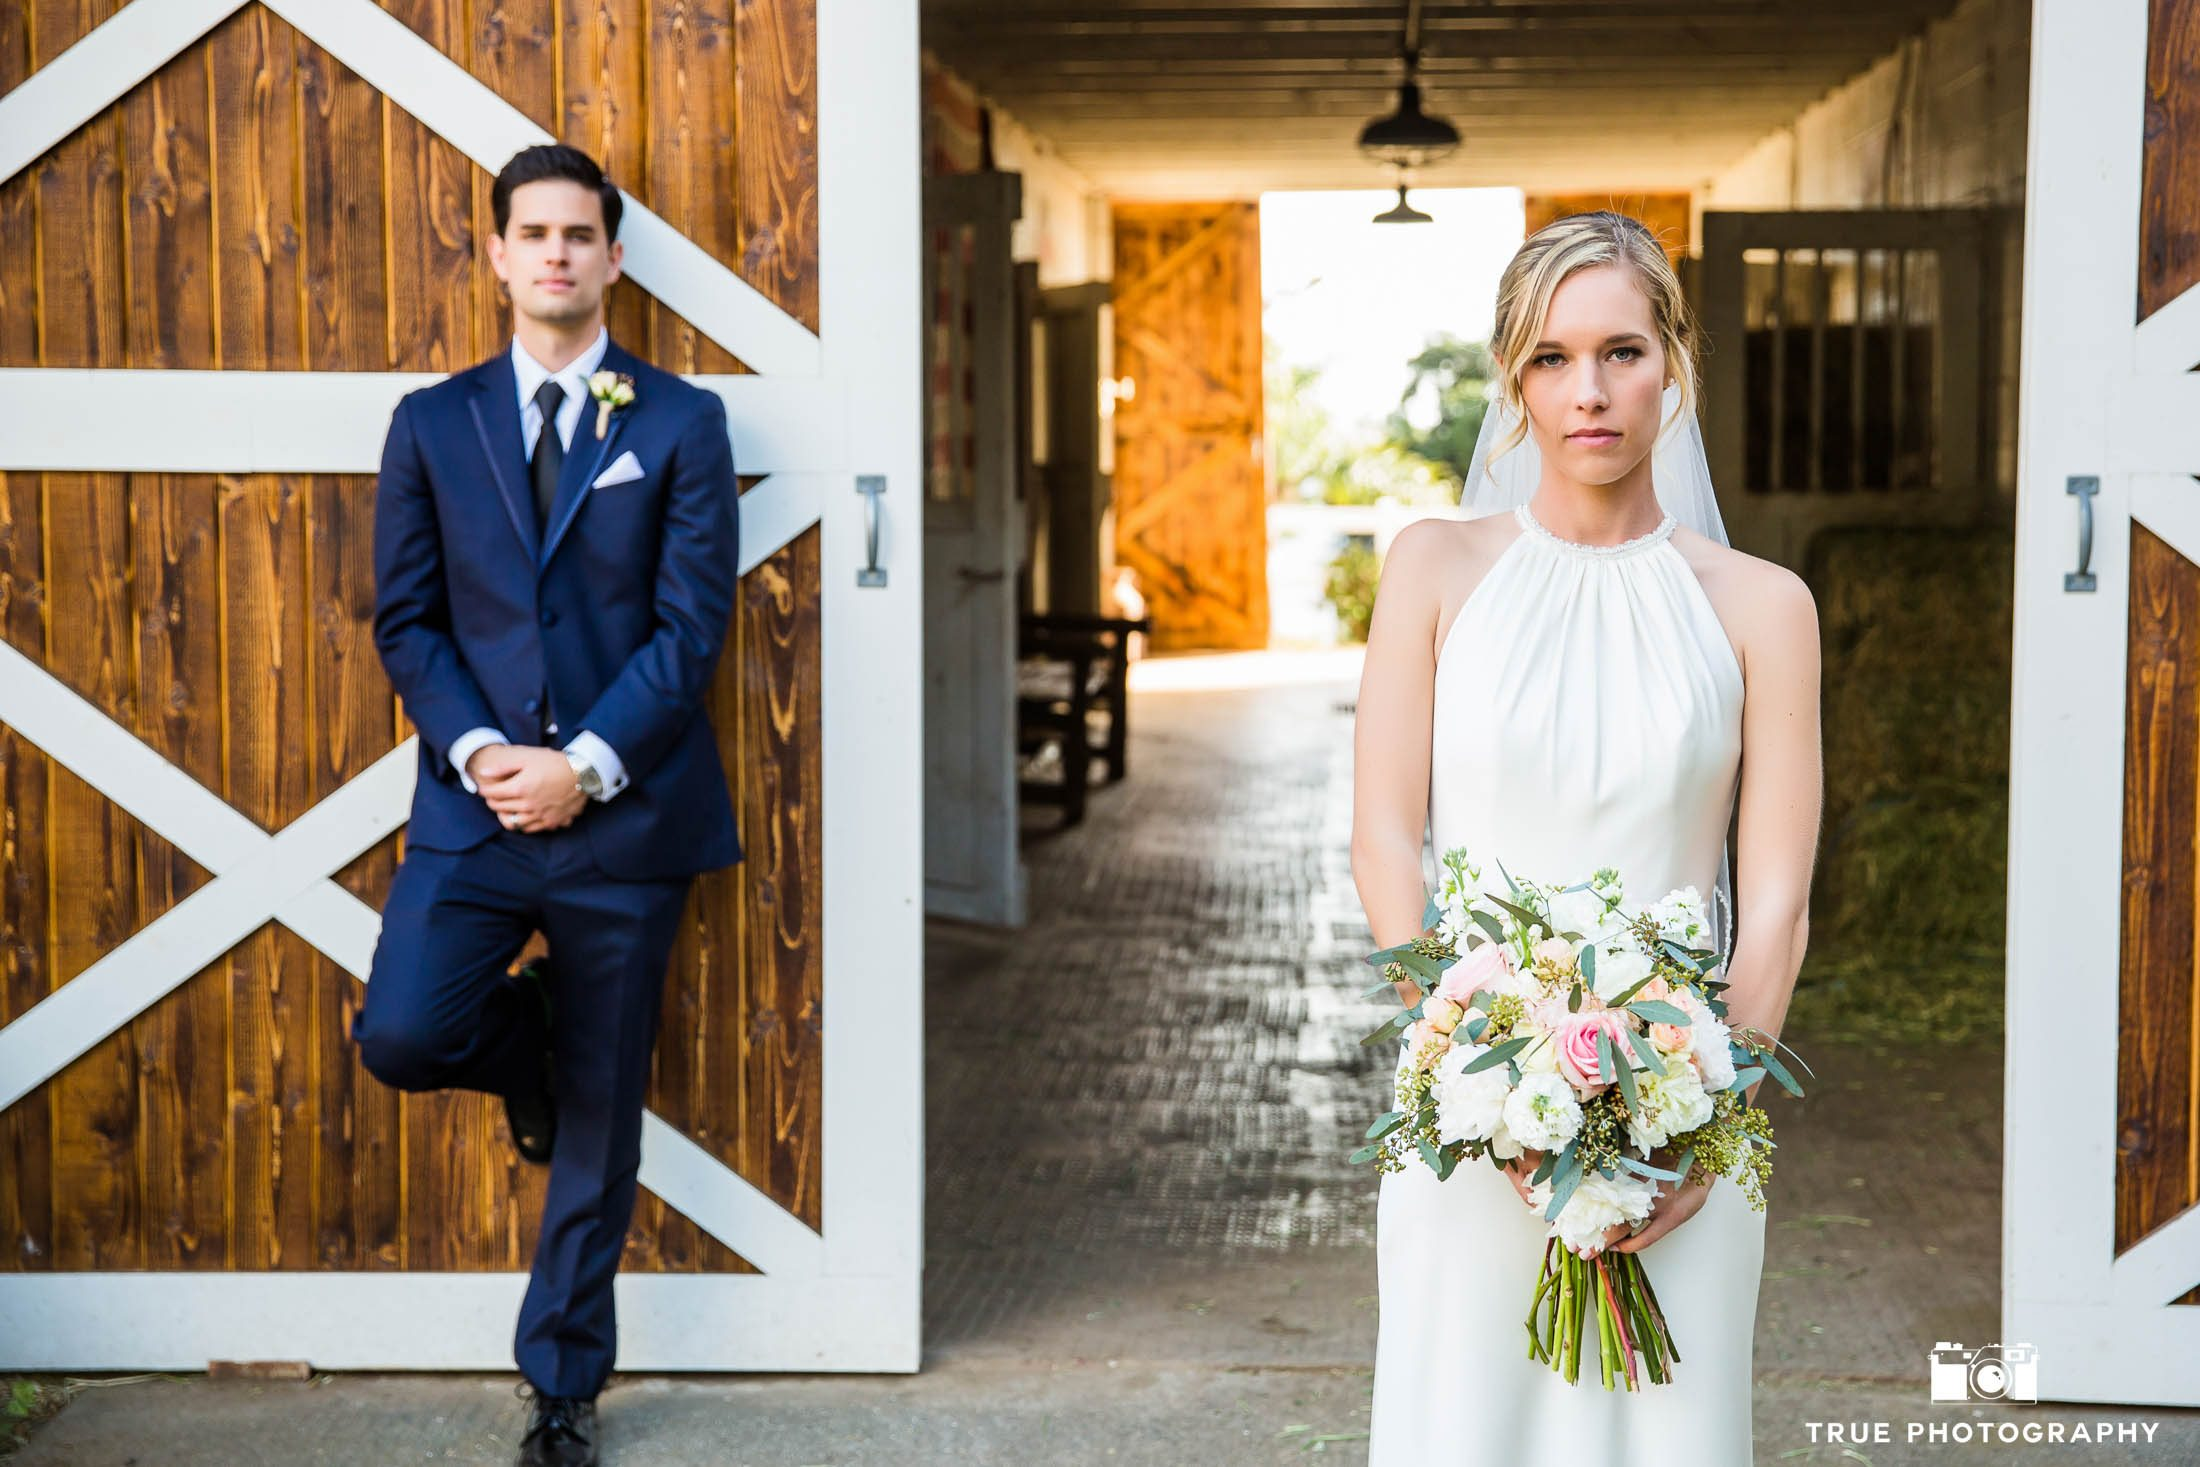 Bride and Groom stand in front of rustic barn door after outdoor ceremony